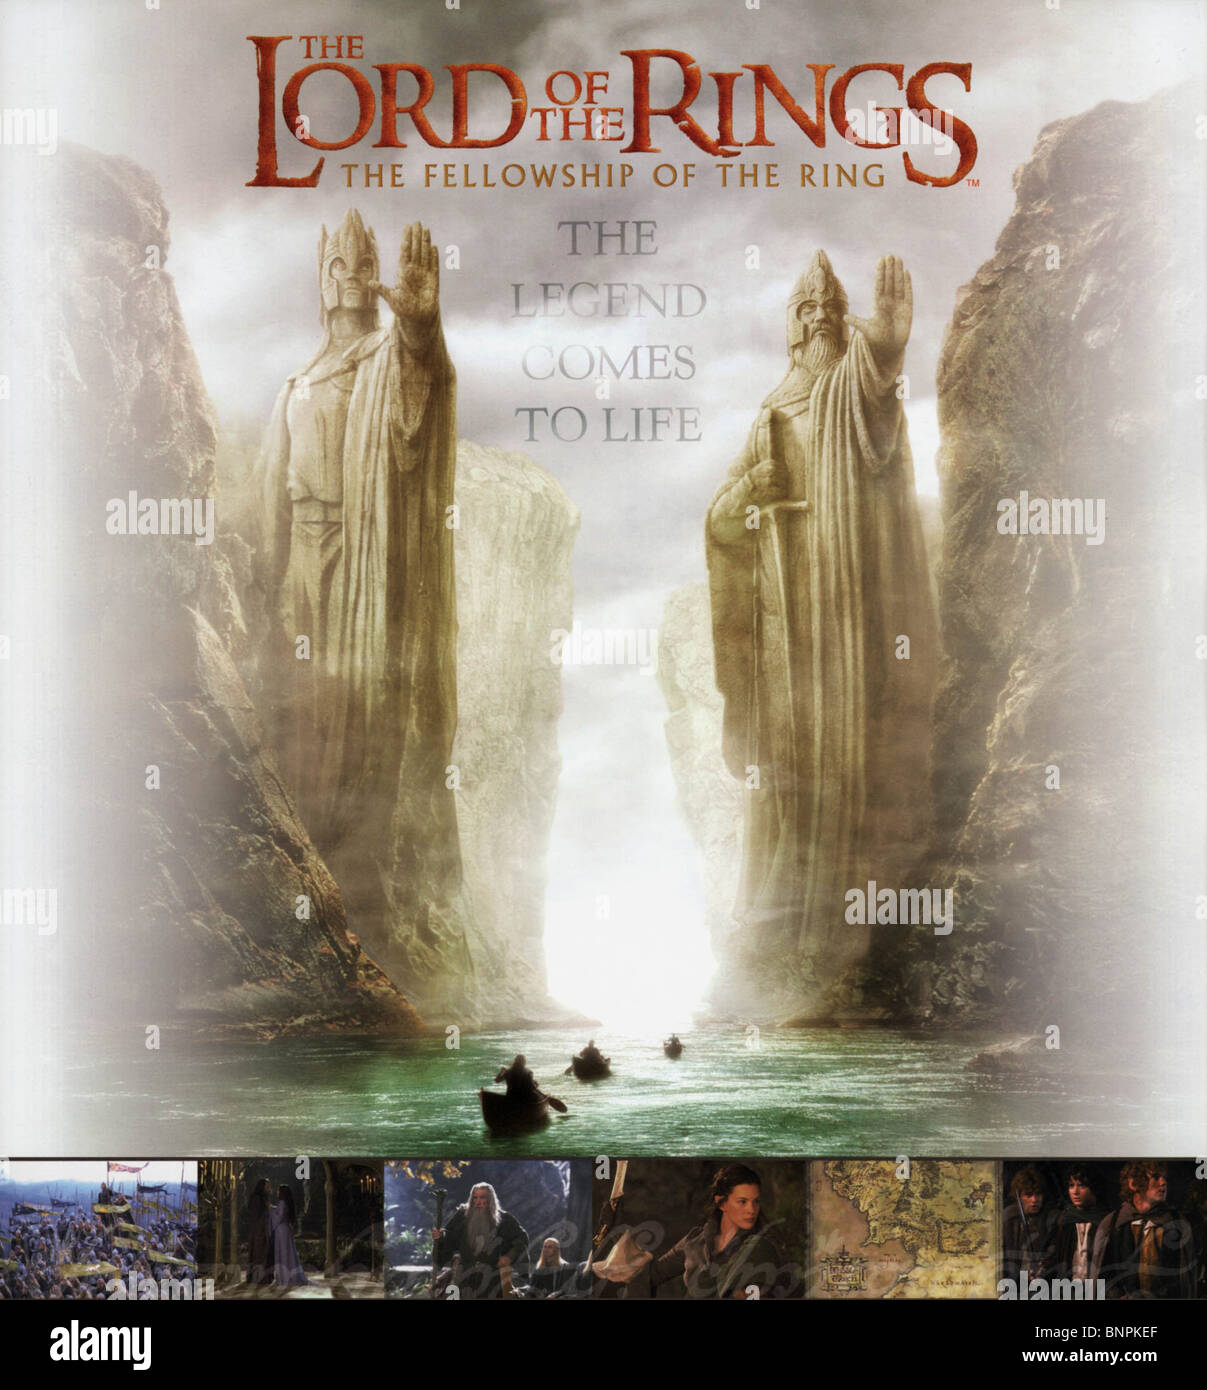 lord of the rings poster stock photos lord of the rings poster